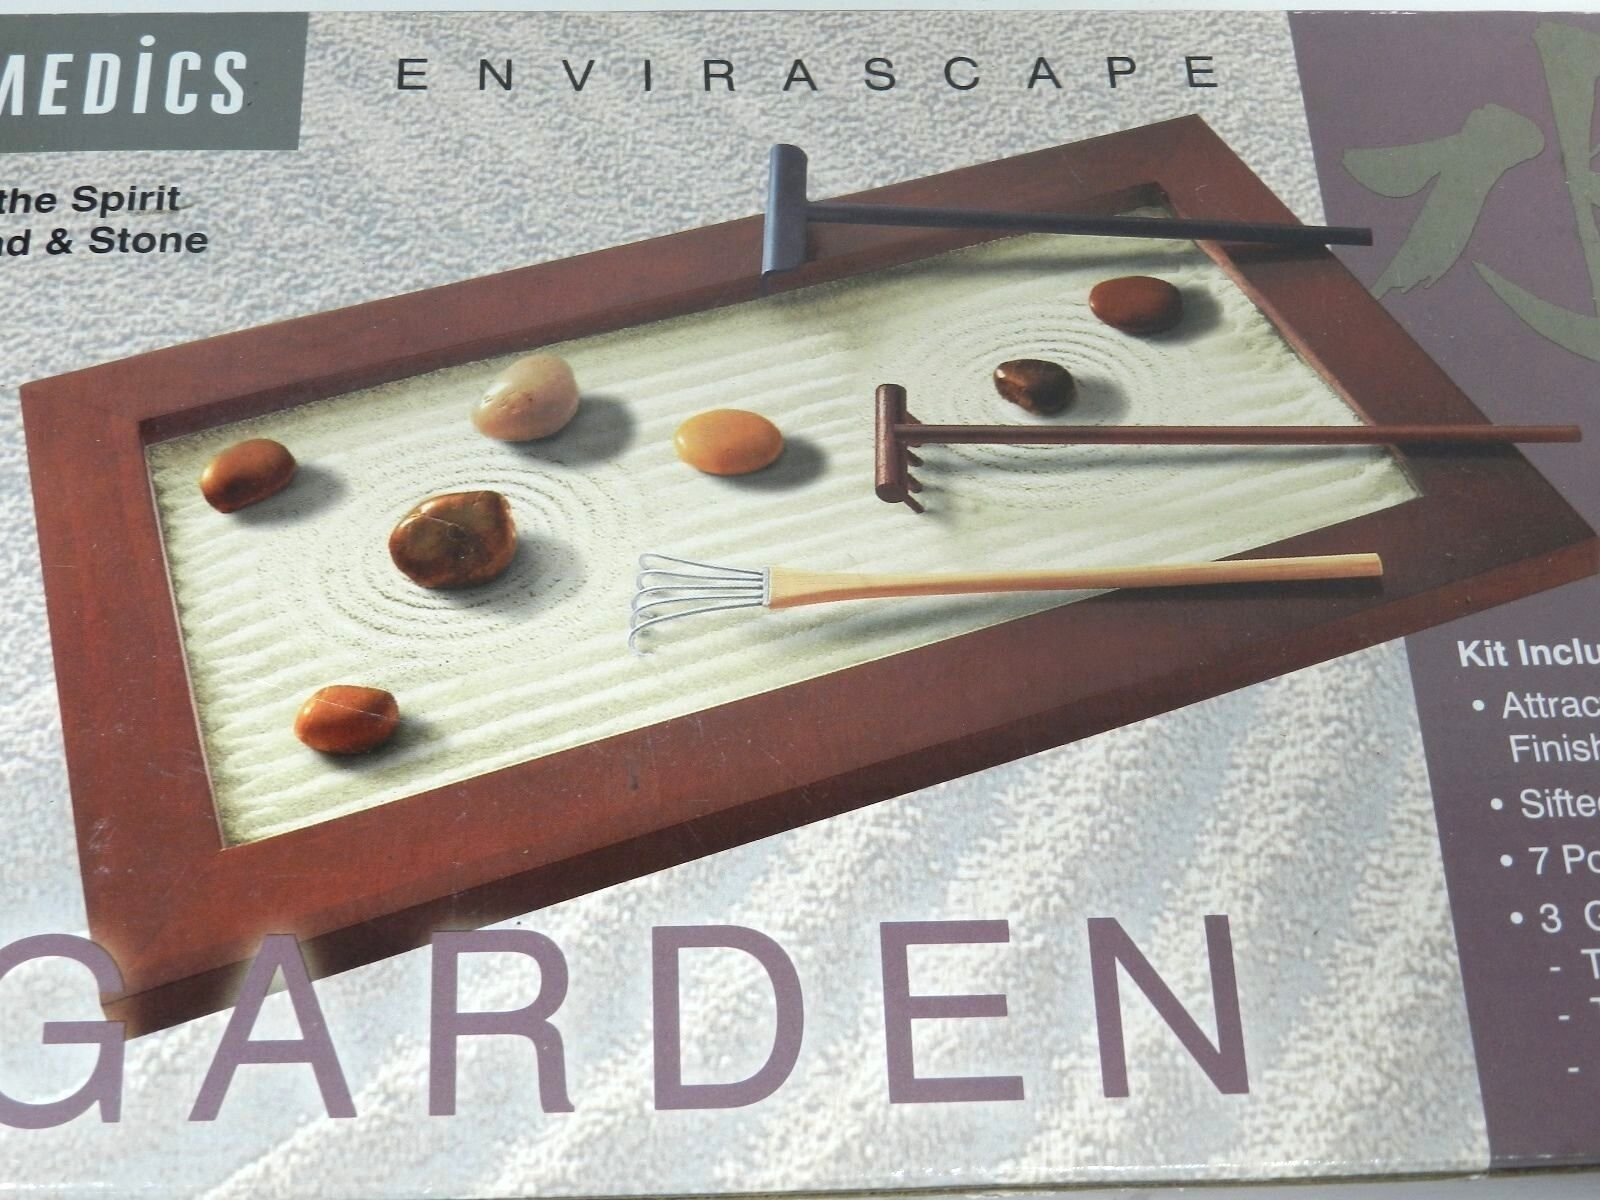 Table Top Zen Garden Upc 031262006233 Homedics Envirascape Zen Garden Kit Zen Wd Wood